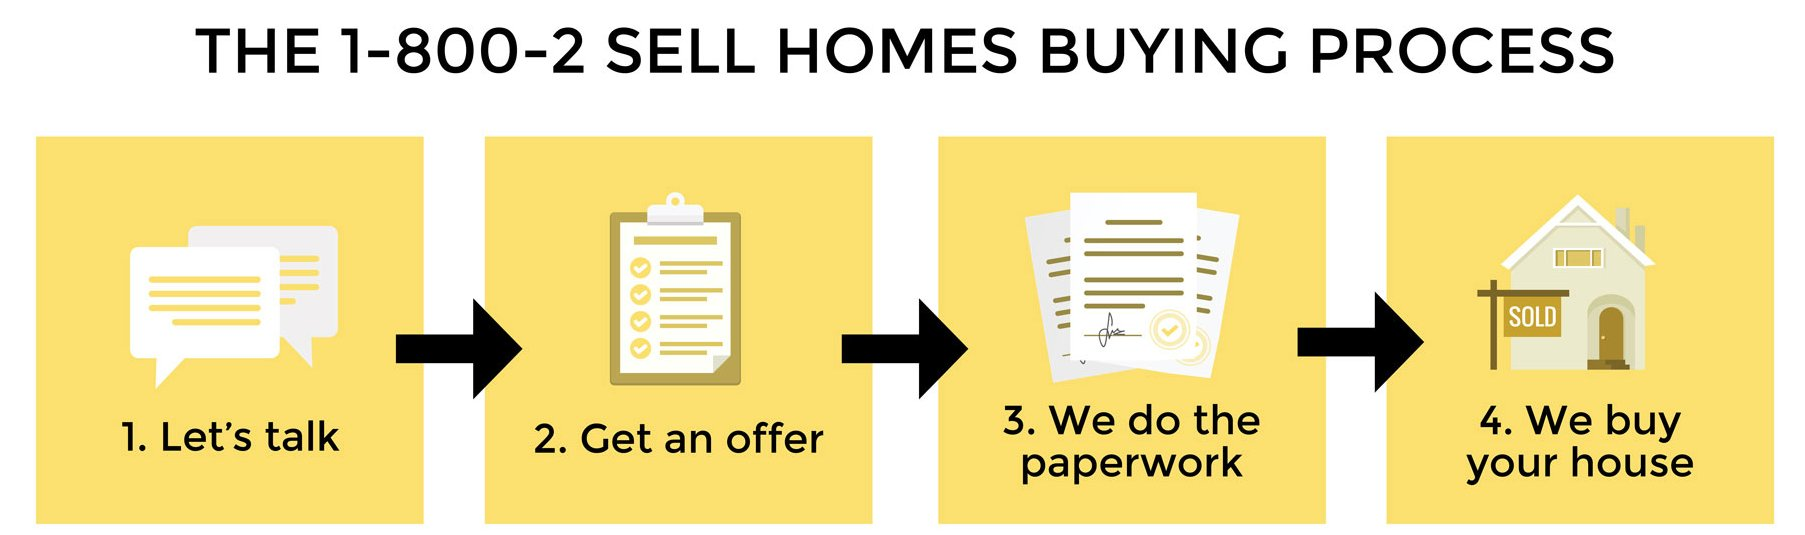 Our Home buying Process